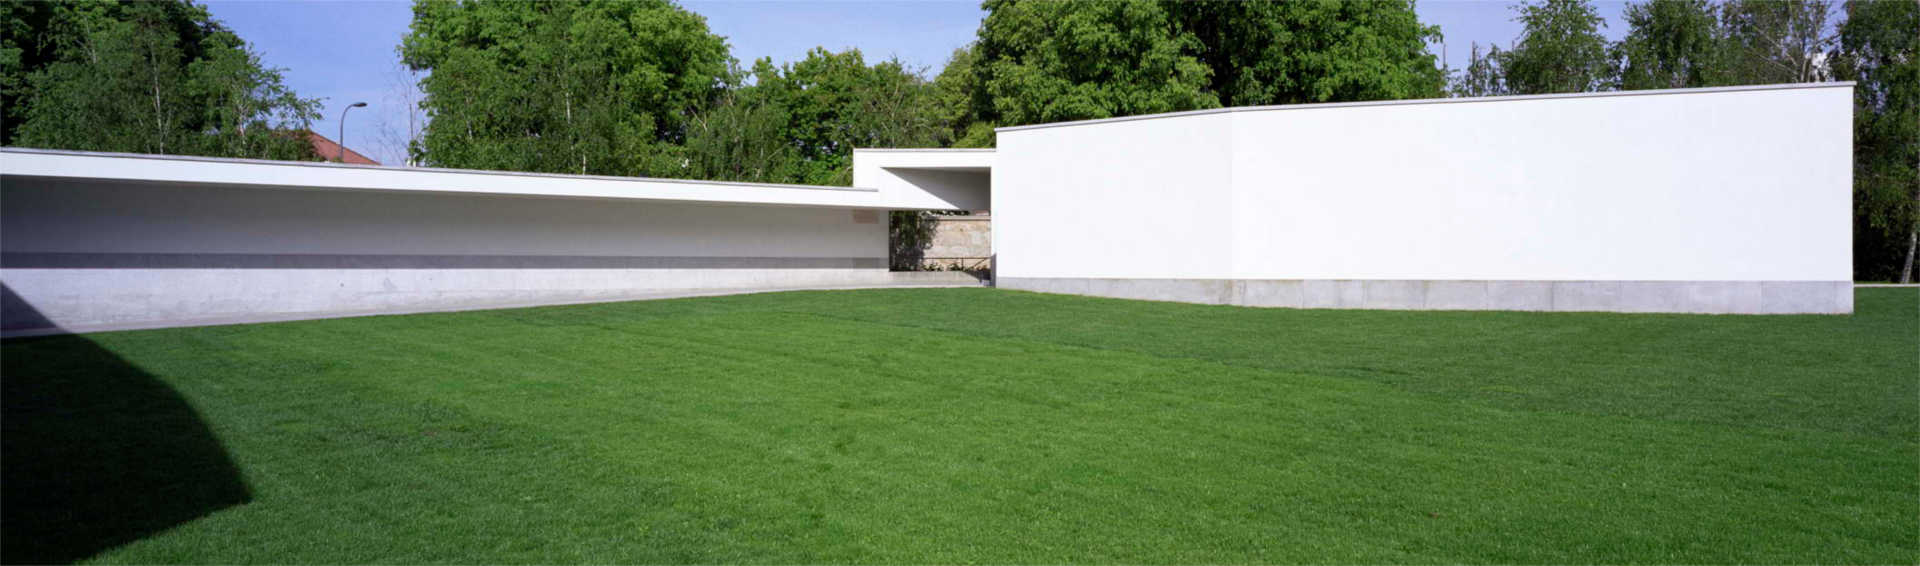 Serralves Foundation - image 5